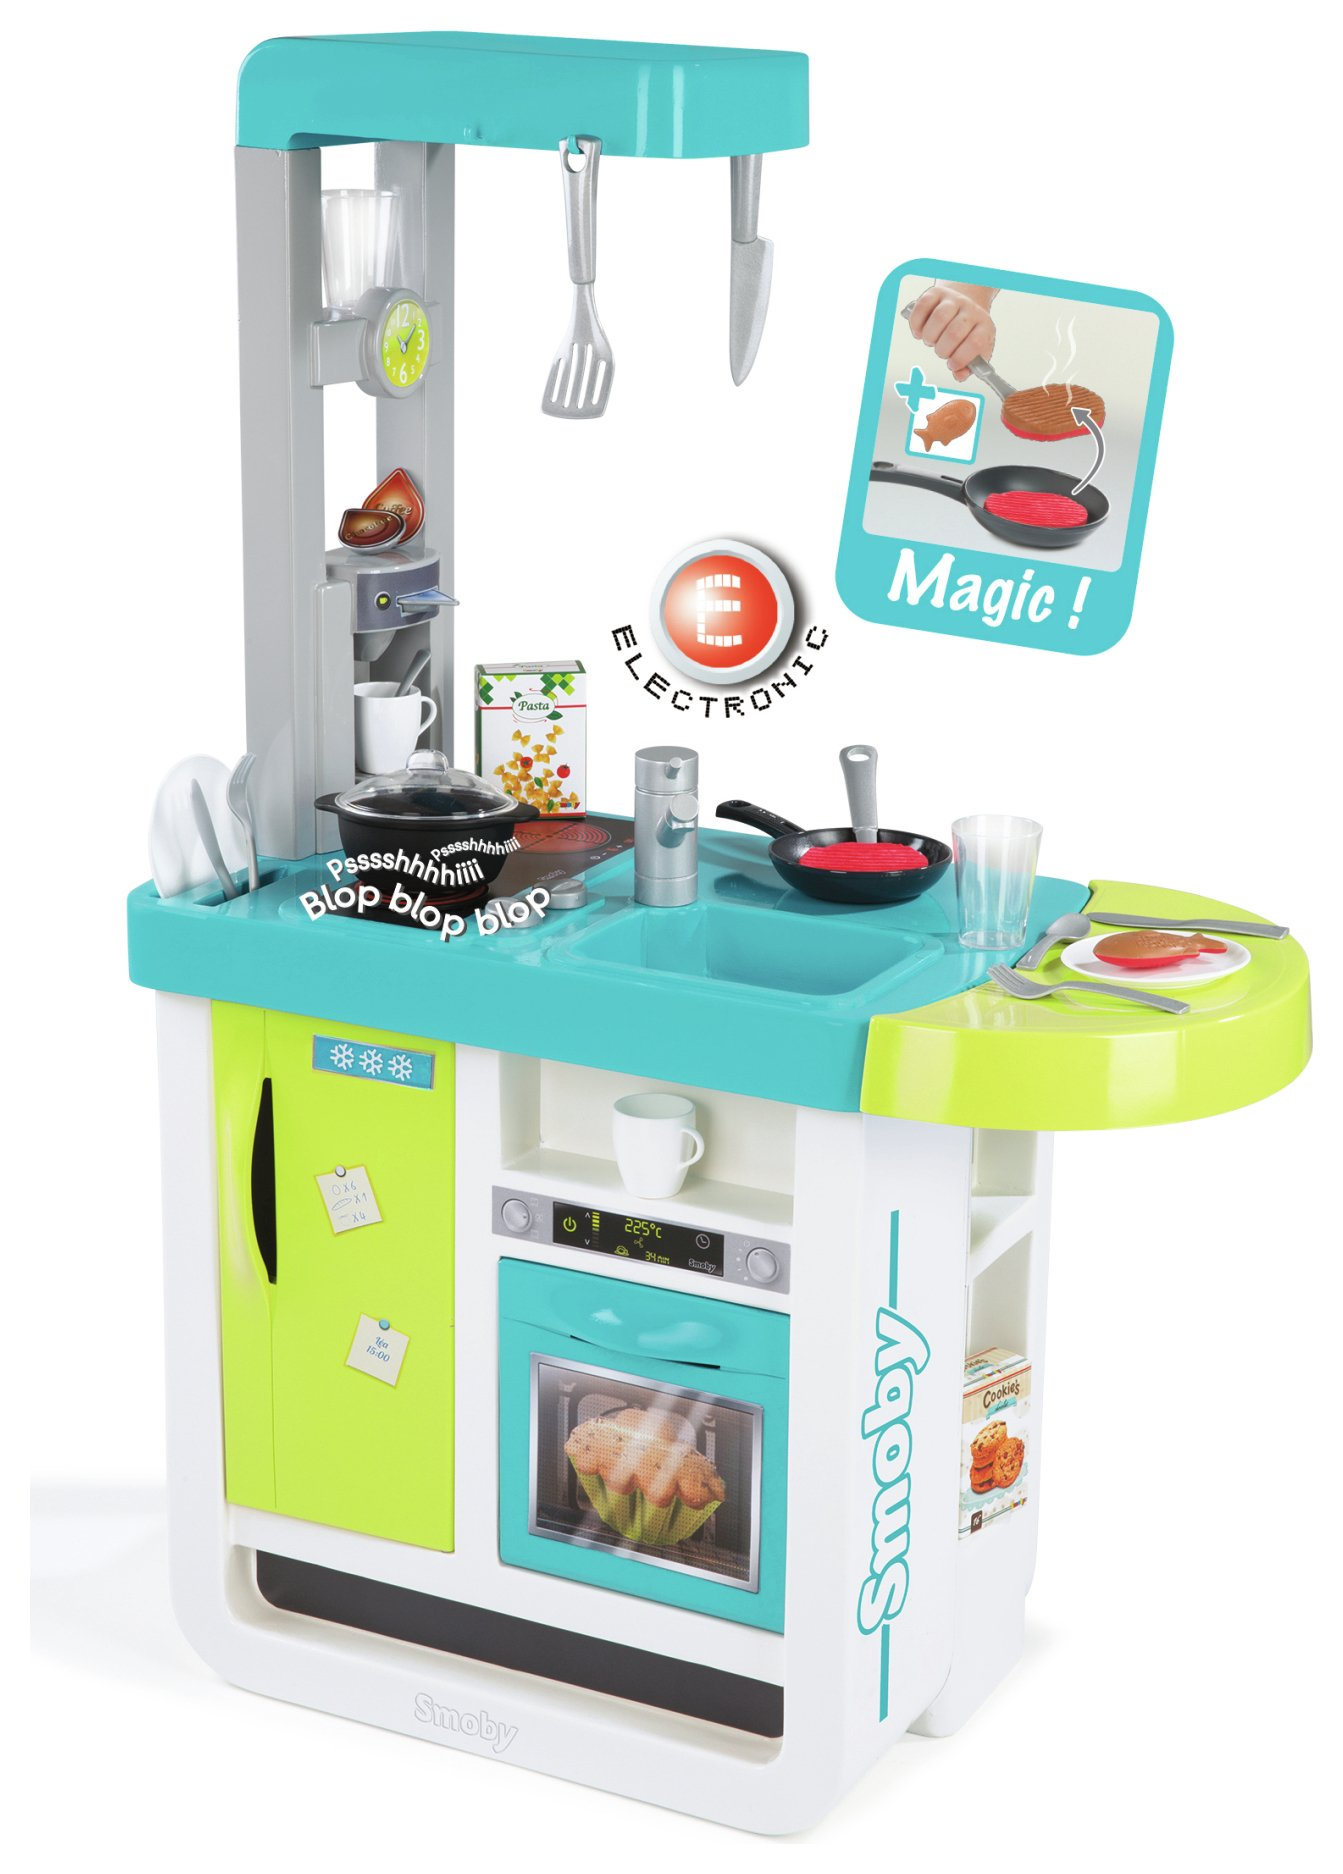 Image of Smoby Cherry Kitchen.